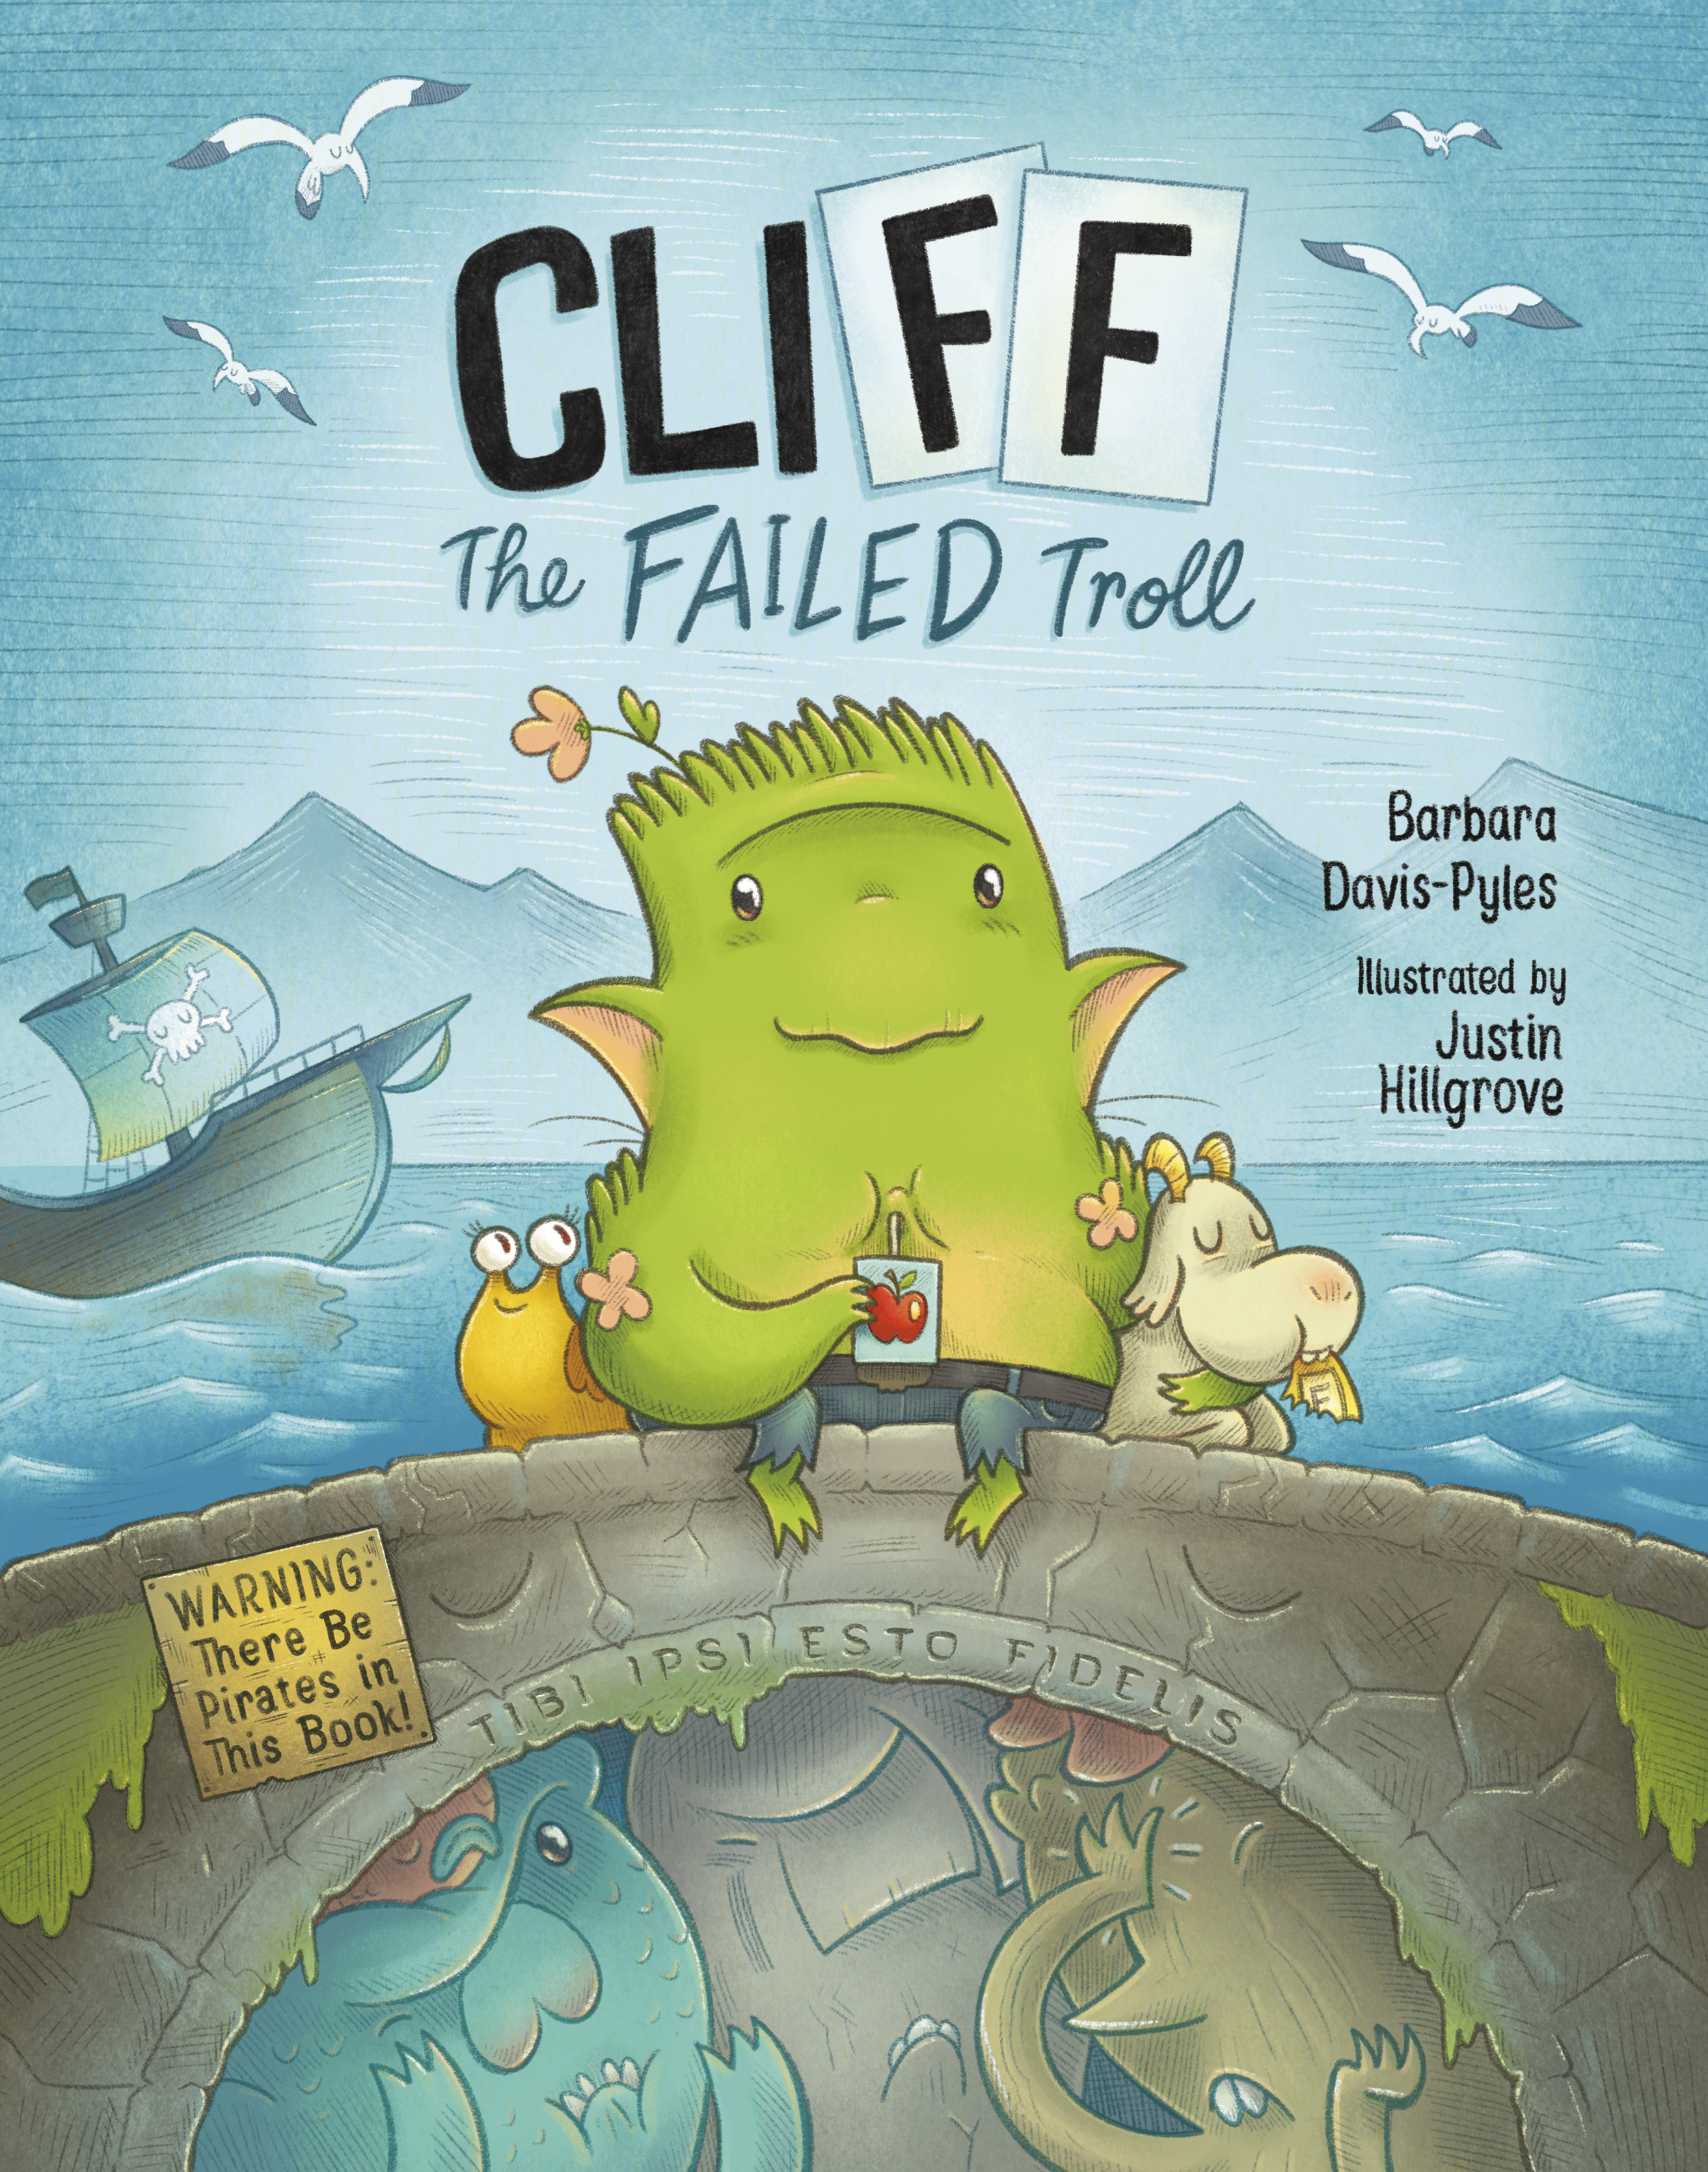 CliFF.COVER.CORRECT